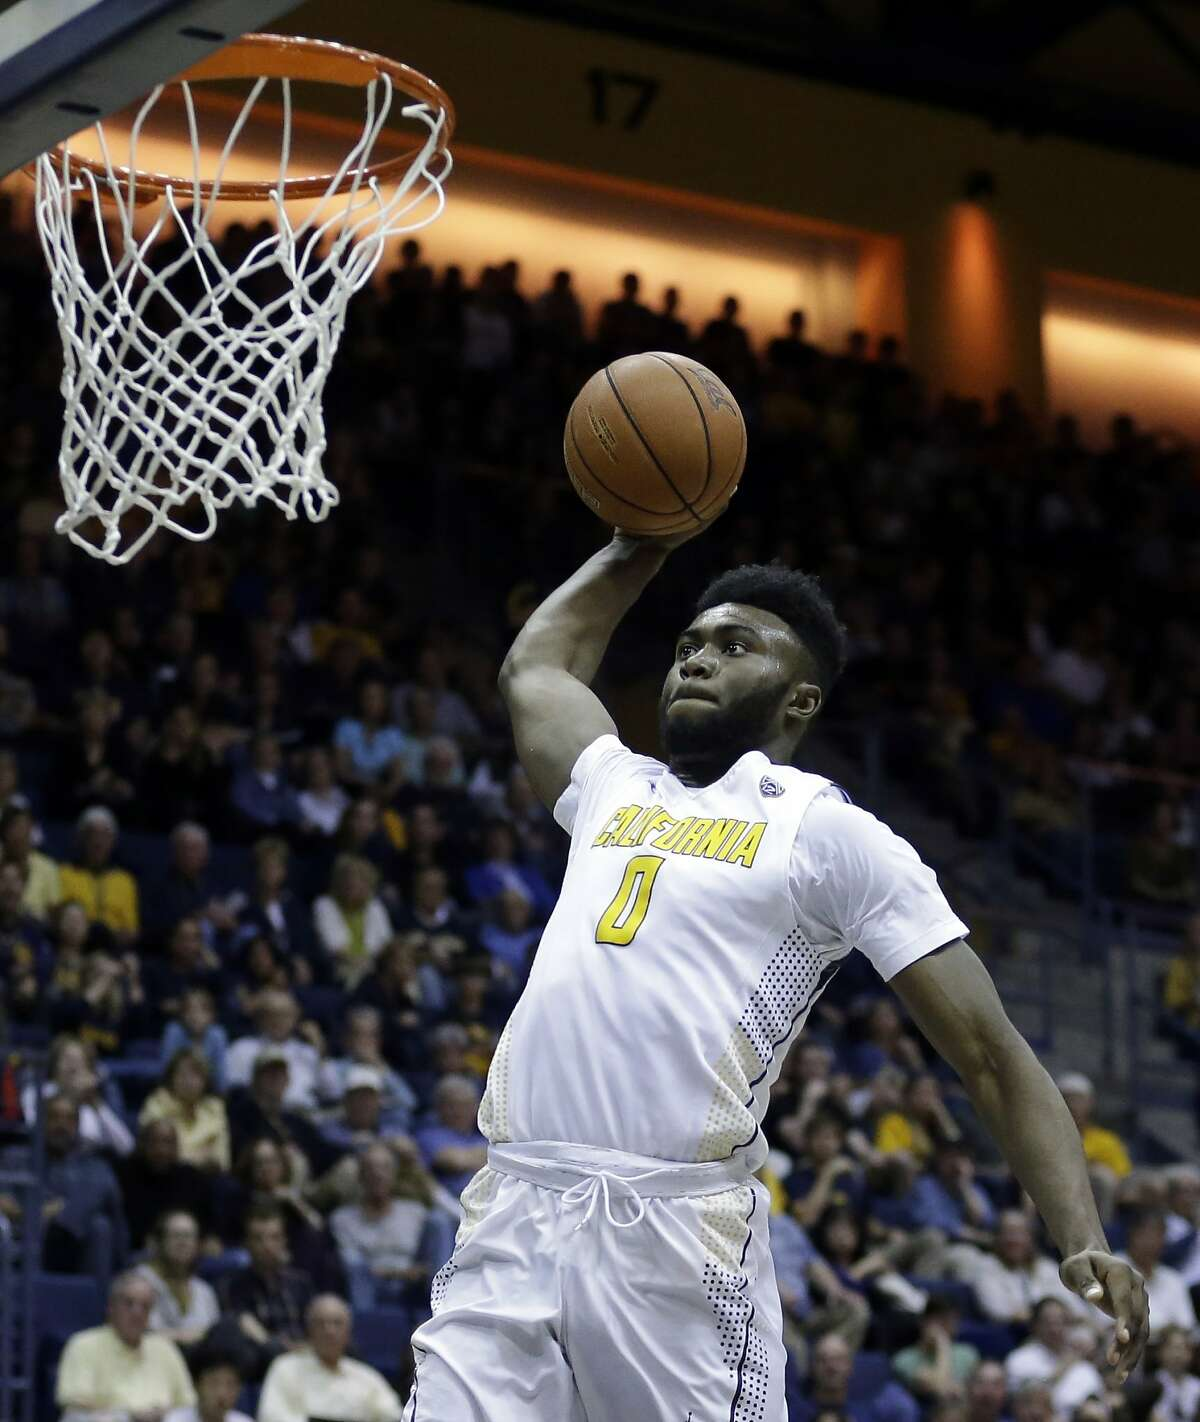 California's Jaylen Brown lays up a shot against Oregon State in the second half of an NCAA college basketball game Saturday, Feb. 13, 2016, in Berkeley, Calif. (AP Photo/Ben Margot)